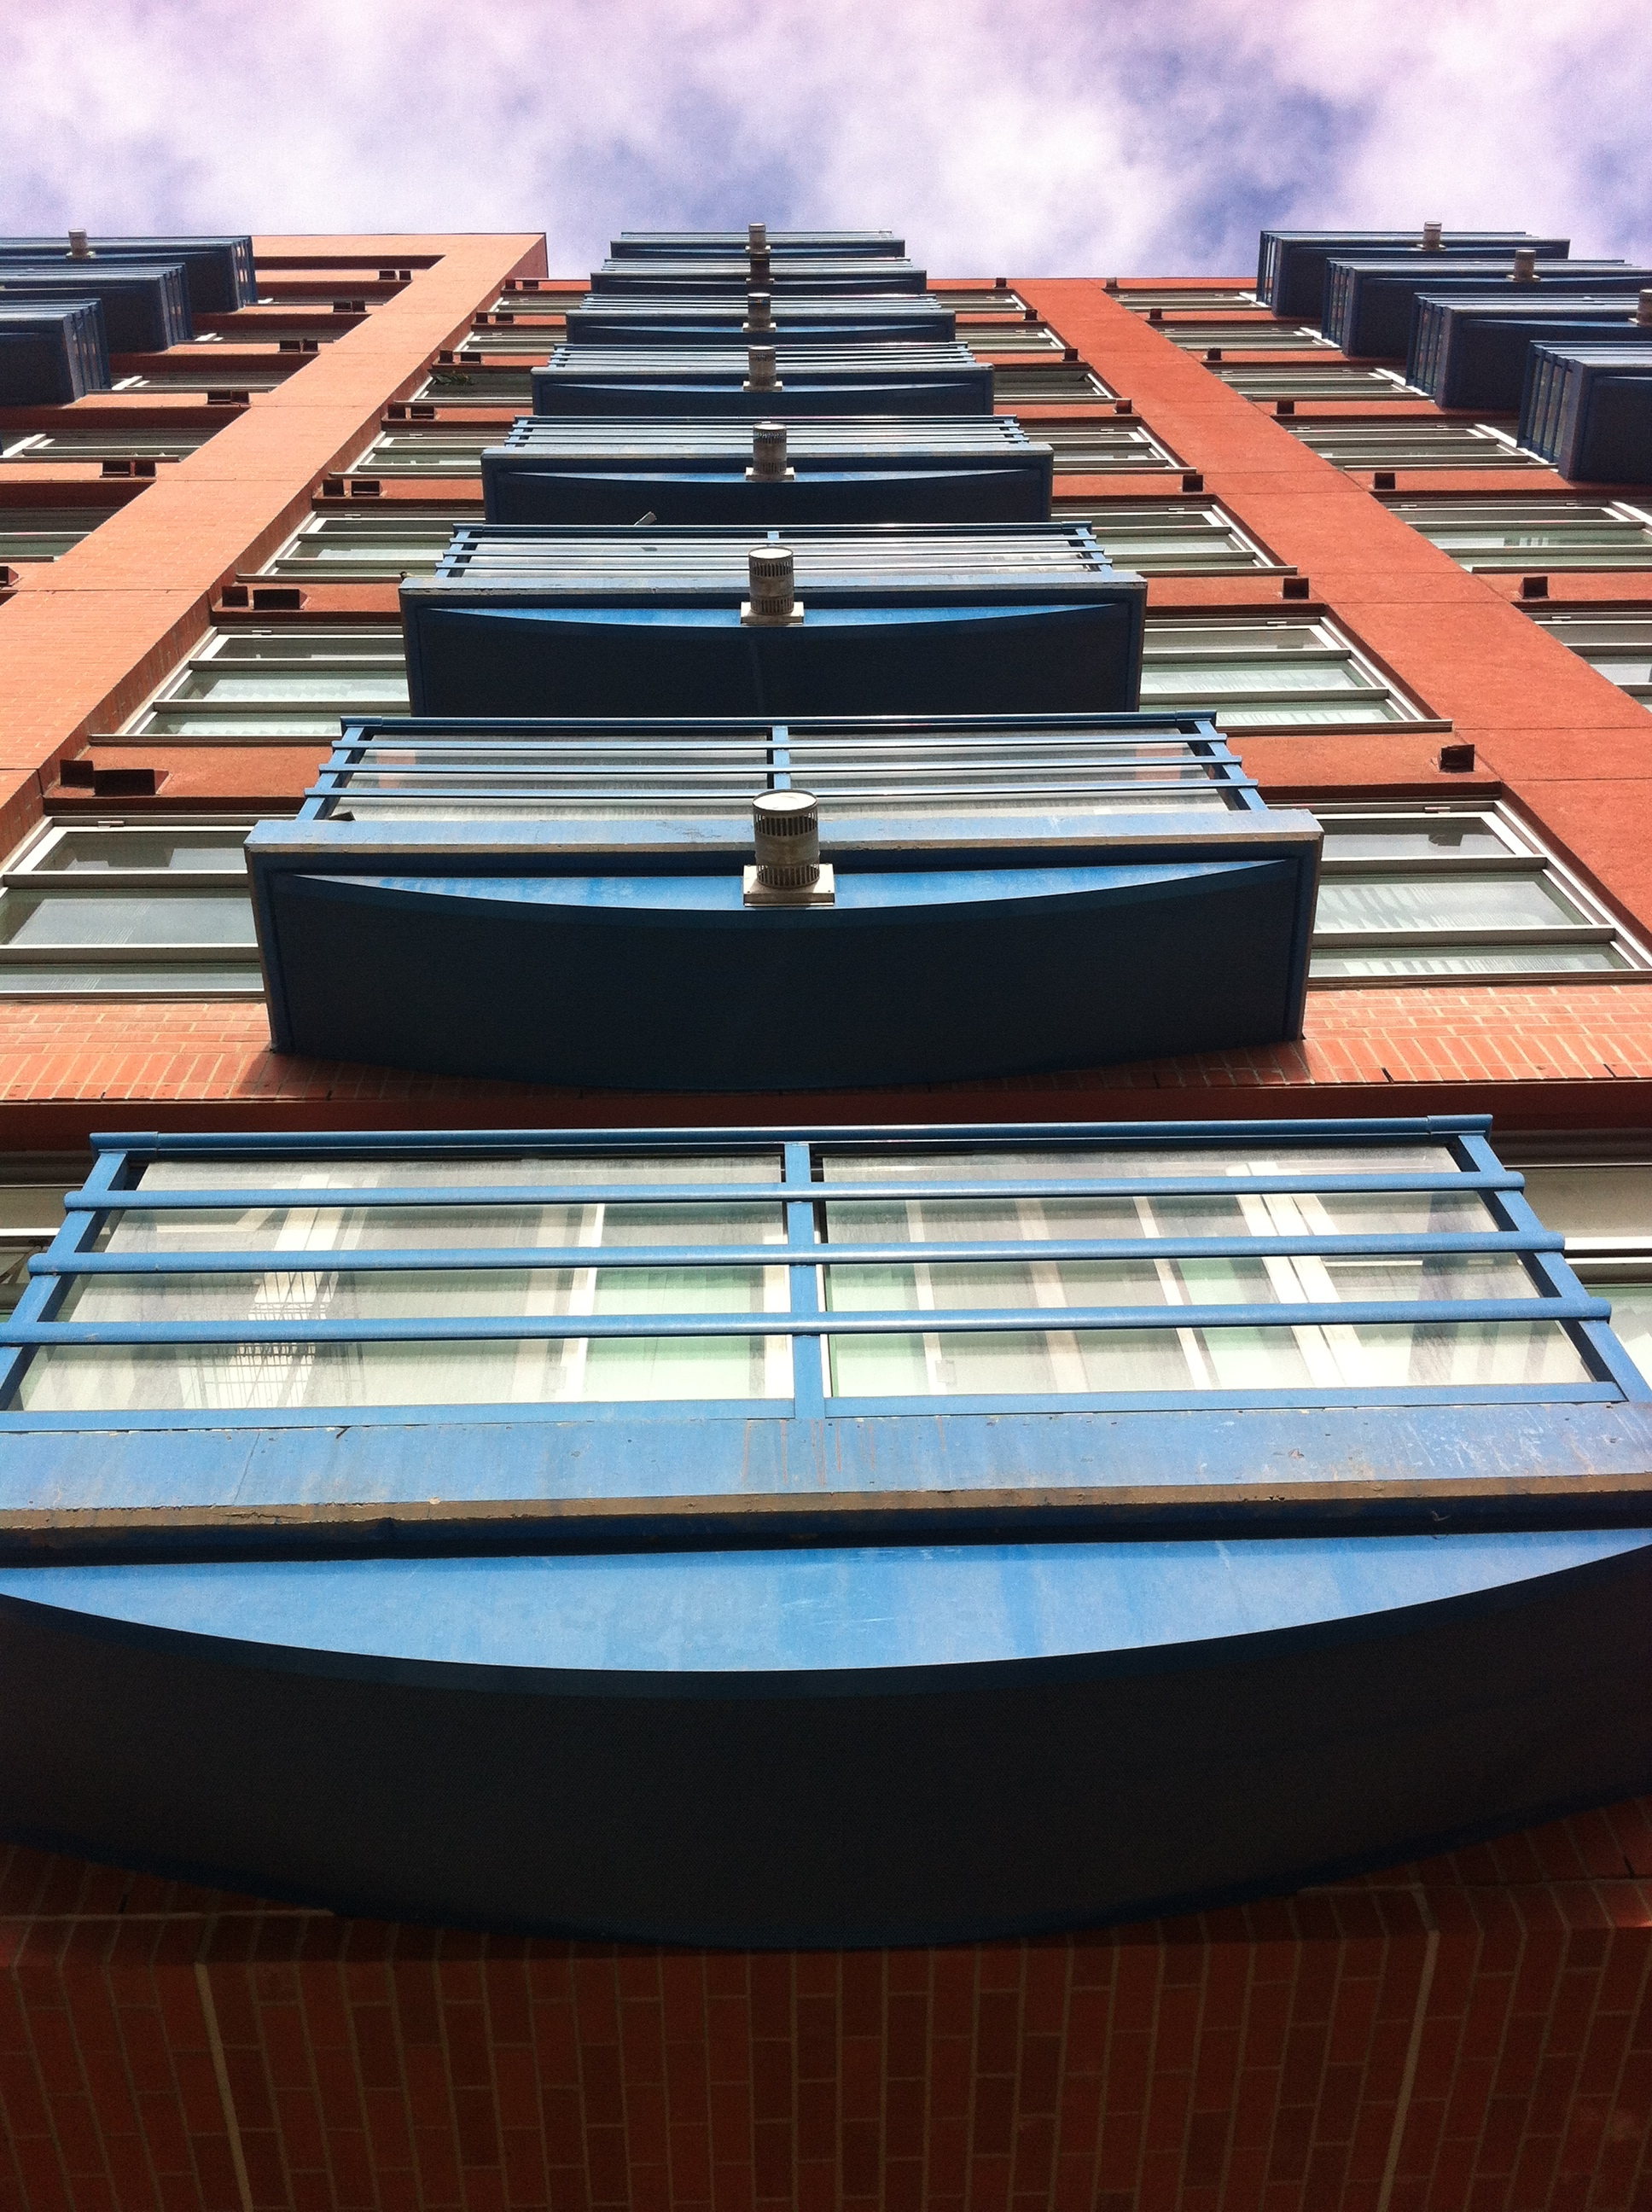 Blue balconies lead the eye to the blue sky.